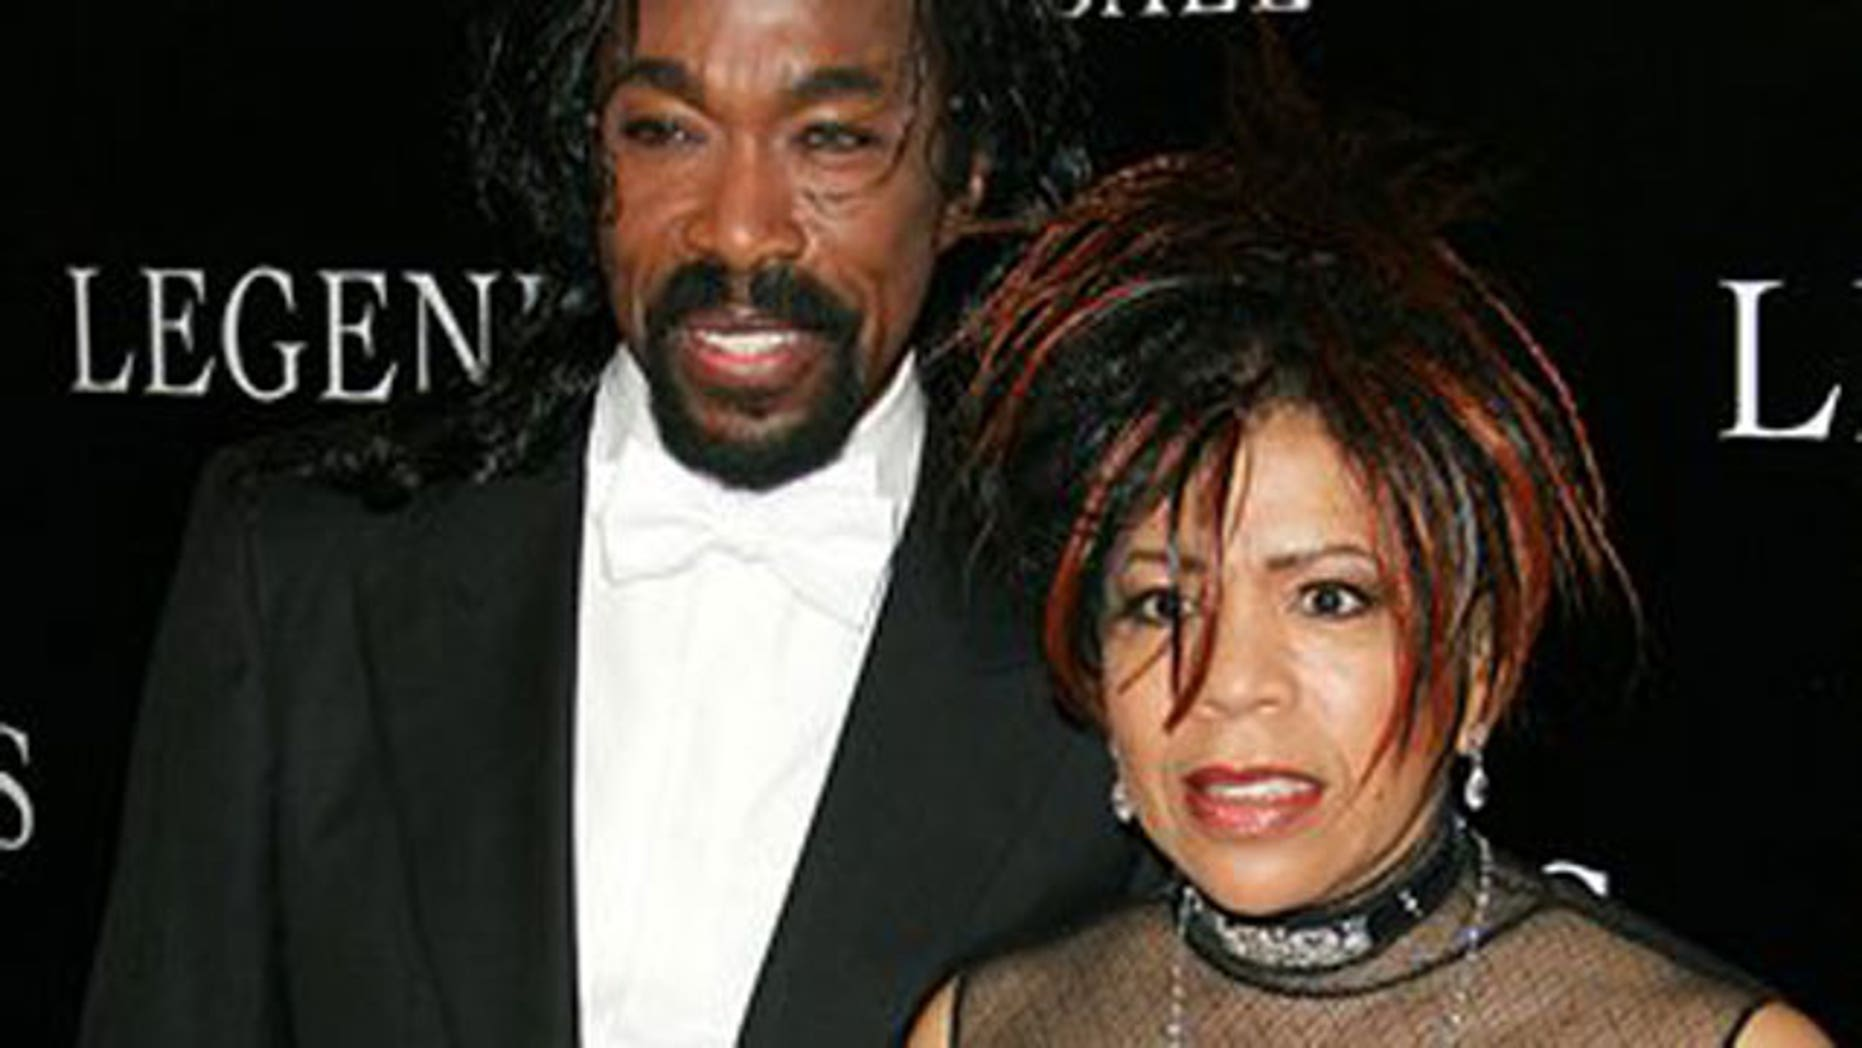 In this May 14, 2005 file photo, Nick Ashford and Valerie Simpson arrive at the Legends Ball in Santa Barbara, Calif. (AP)